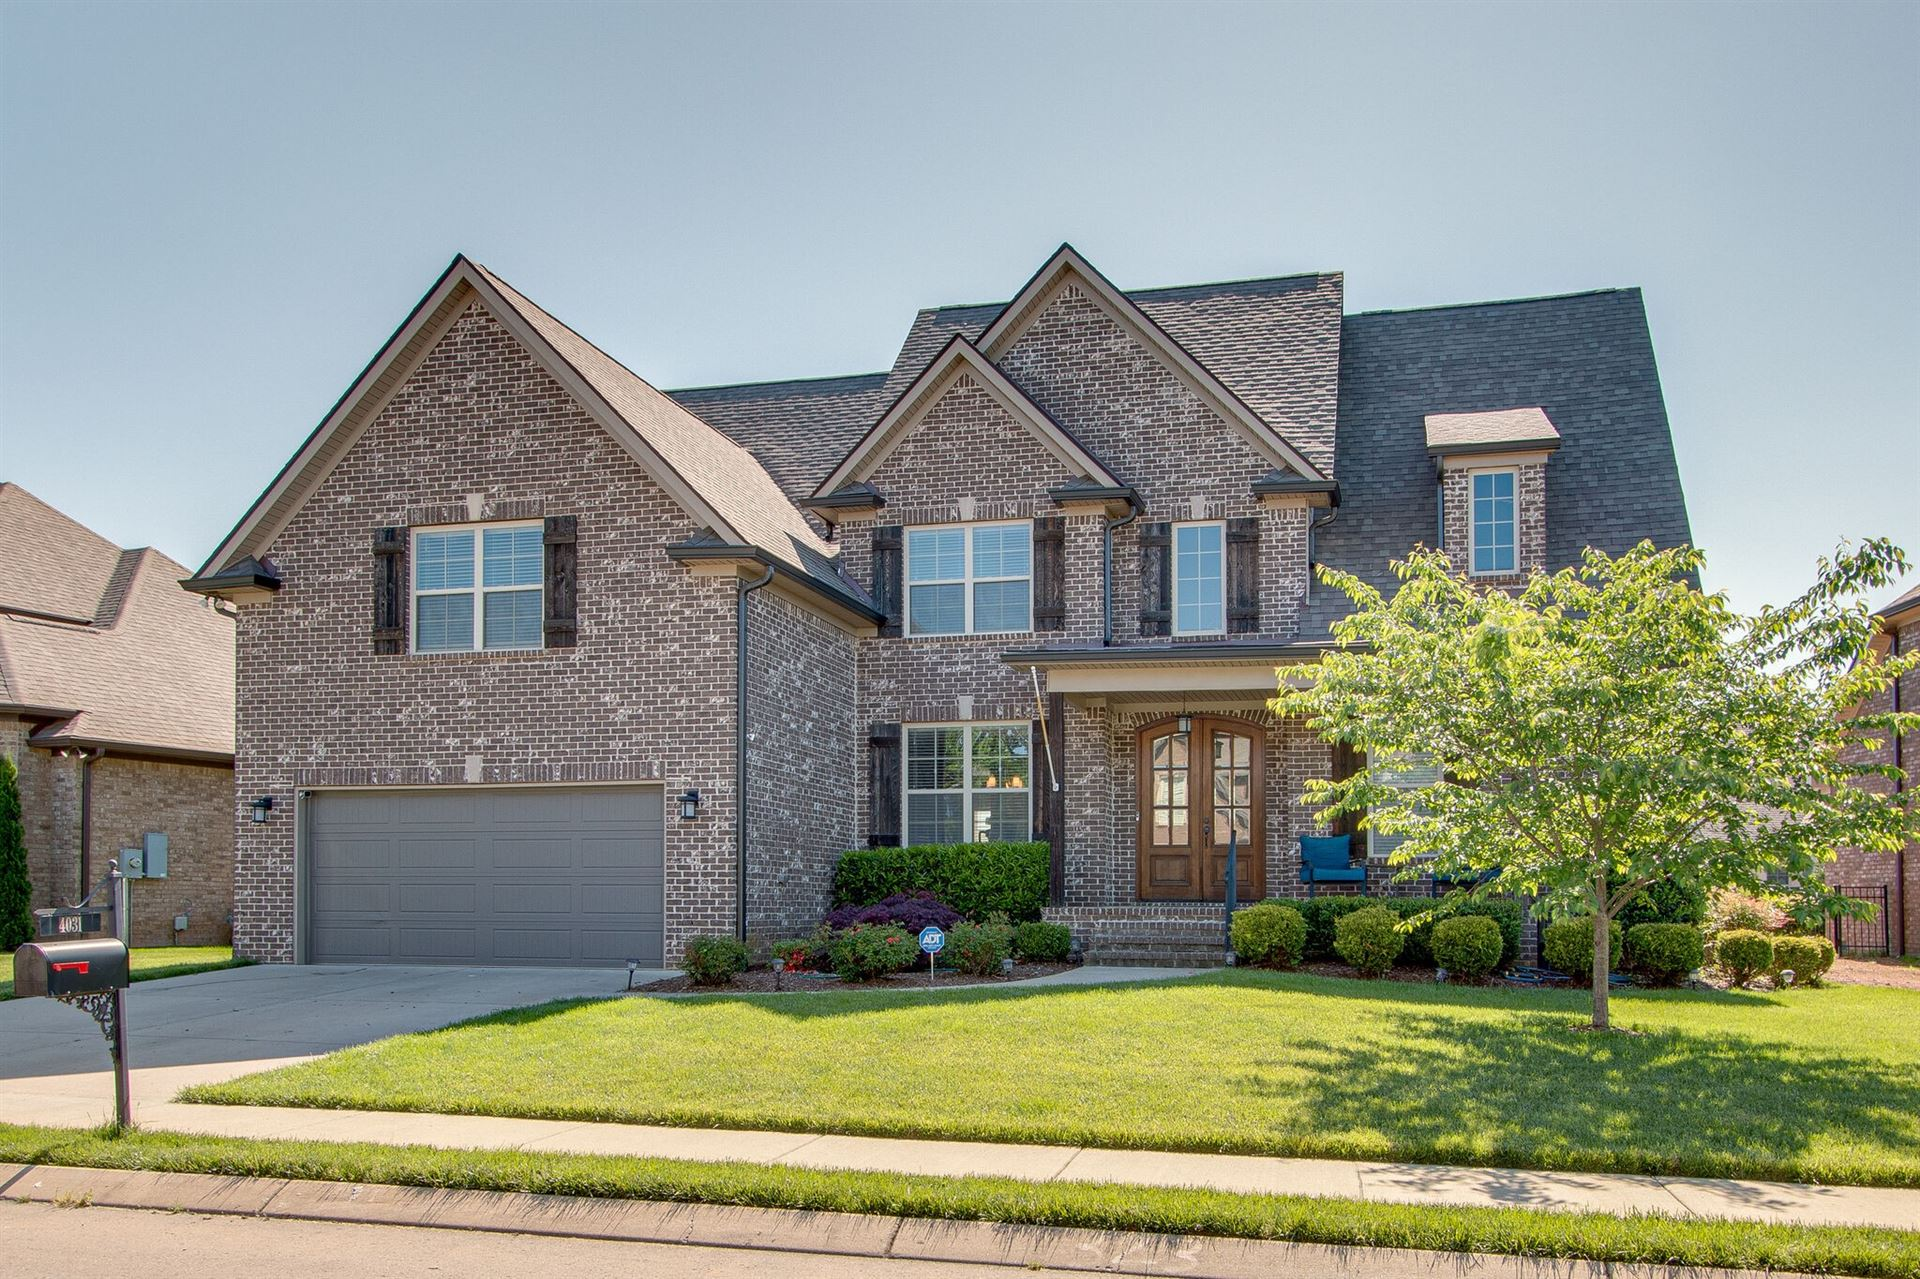 Photo of 4031 Haversack Dr, Spring Hill, TN 37174 (MLS # 2245273)